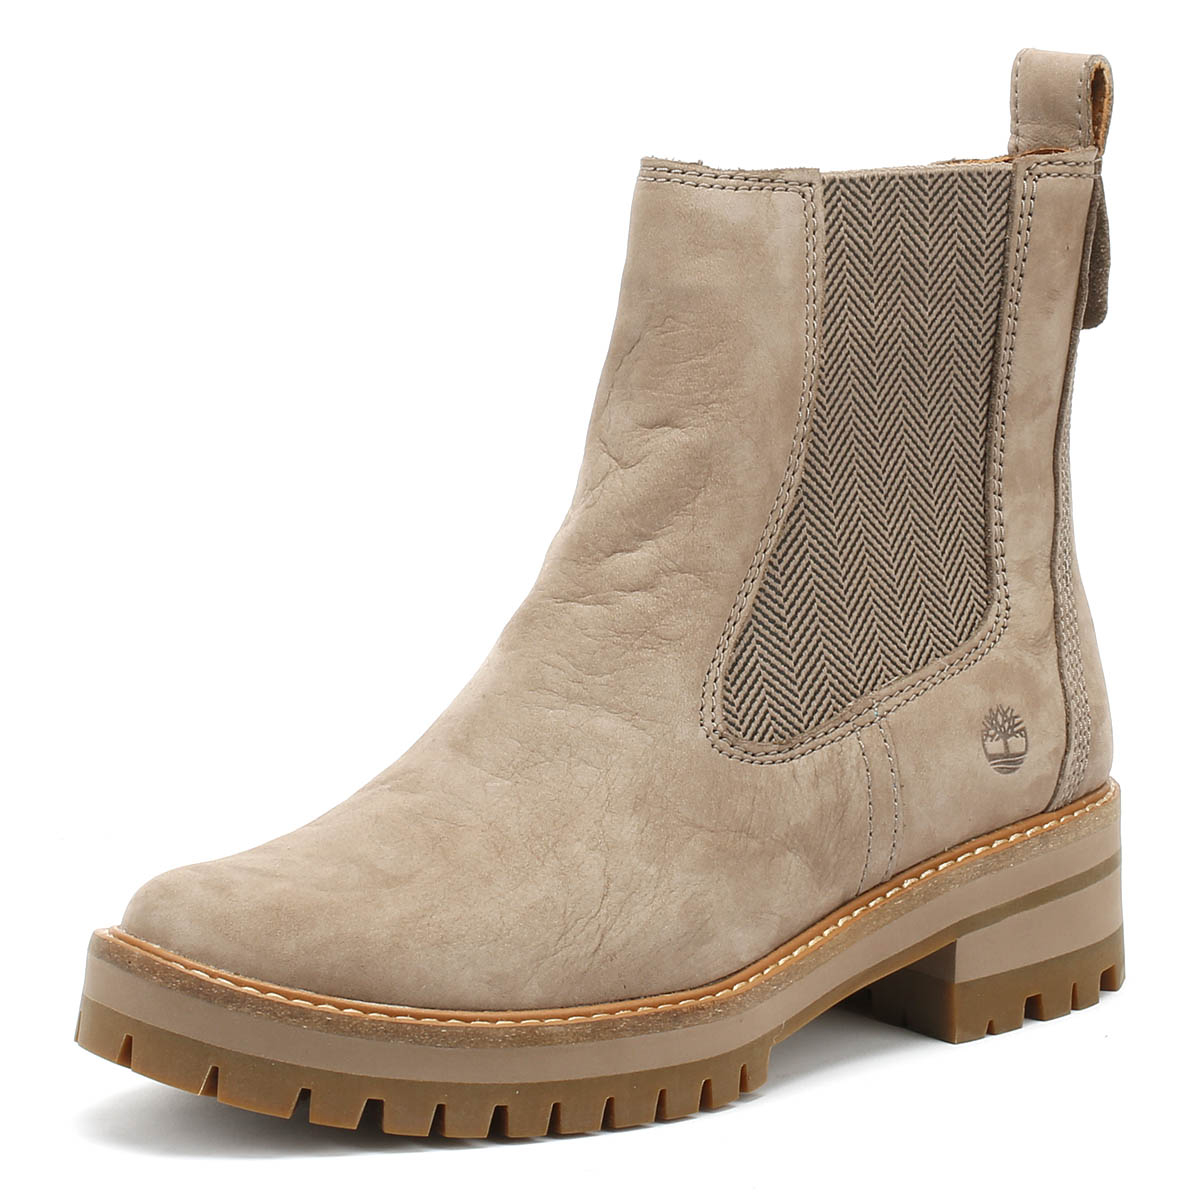 69e46176b98aa Details about Timberland Womens Boots Taupe Courmayeur Valley Chelsea  Winter Ankle Shoes